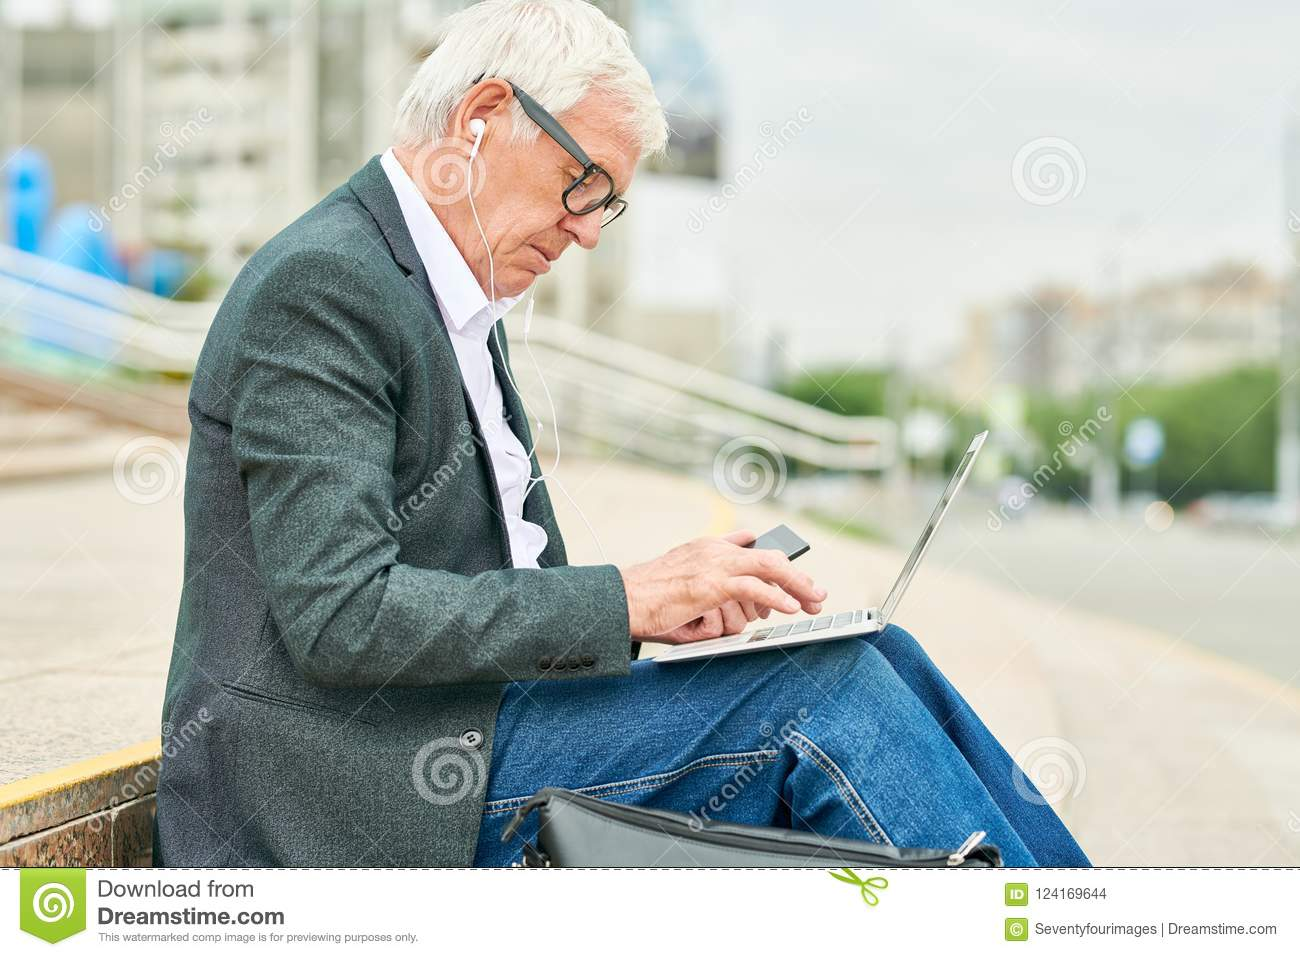 Aged businessman using laptop and listening to music